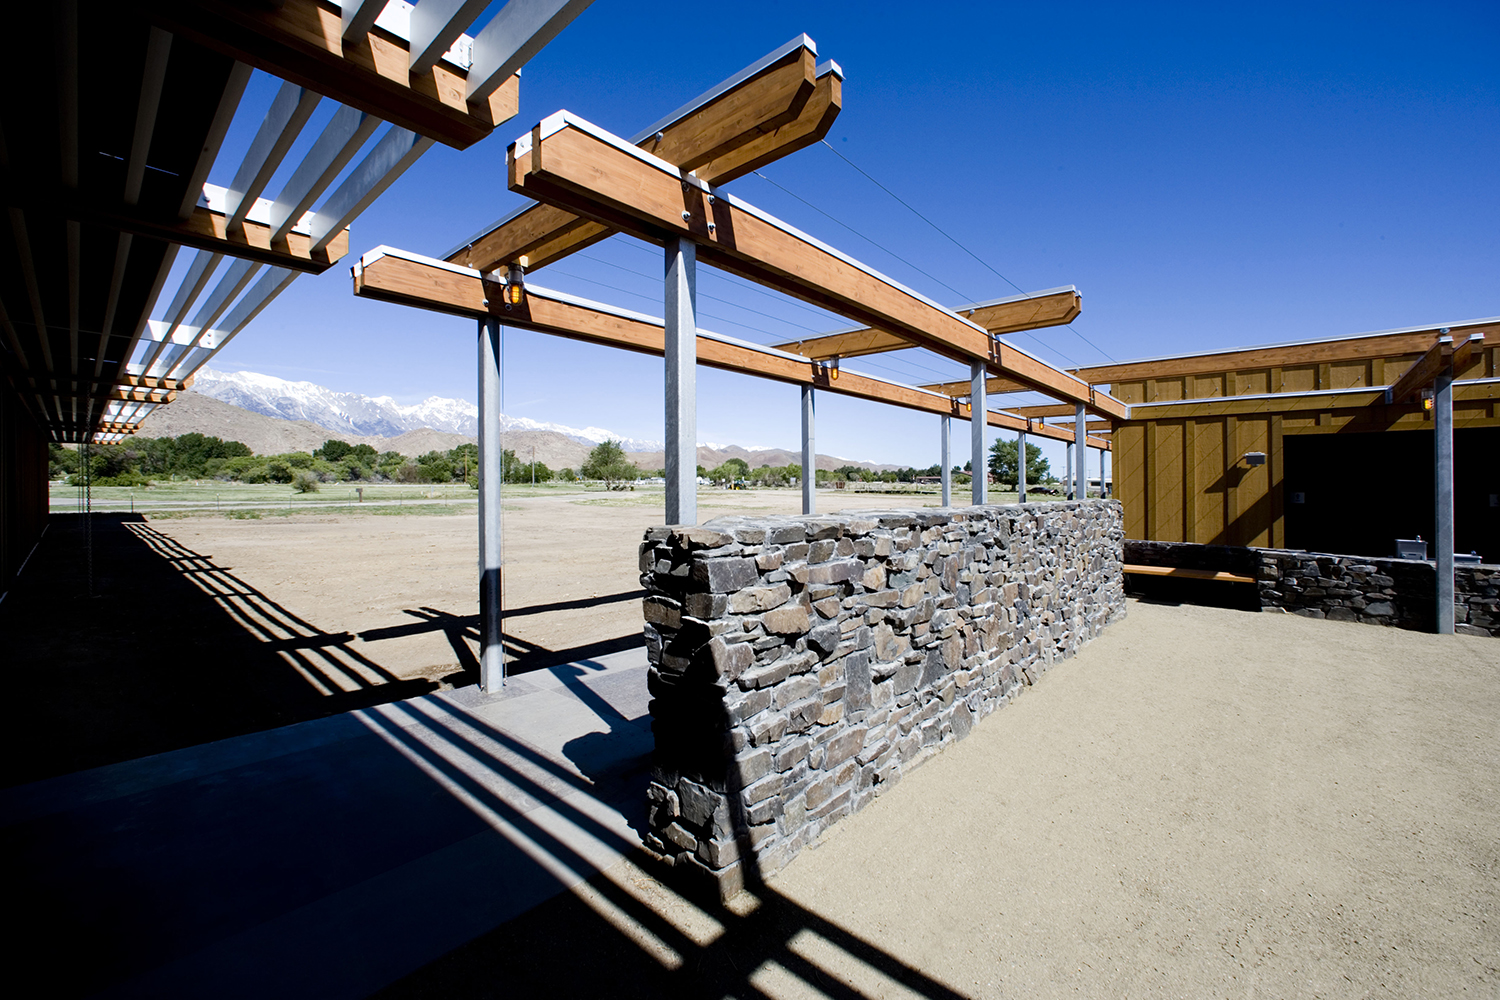 05_Projects_Eastern Sierra Inter-Agency Visitor Center.jpg